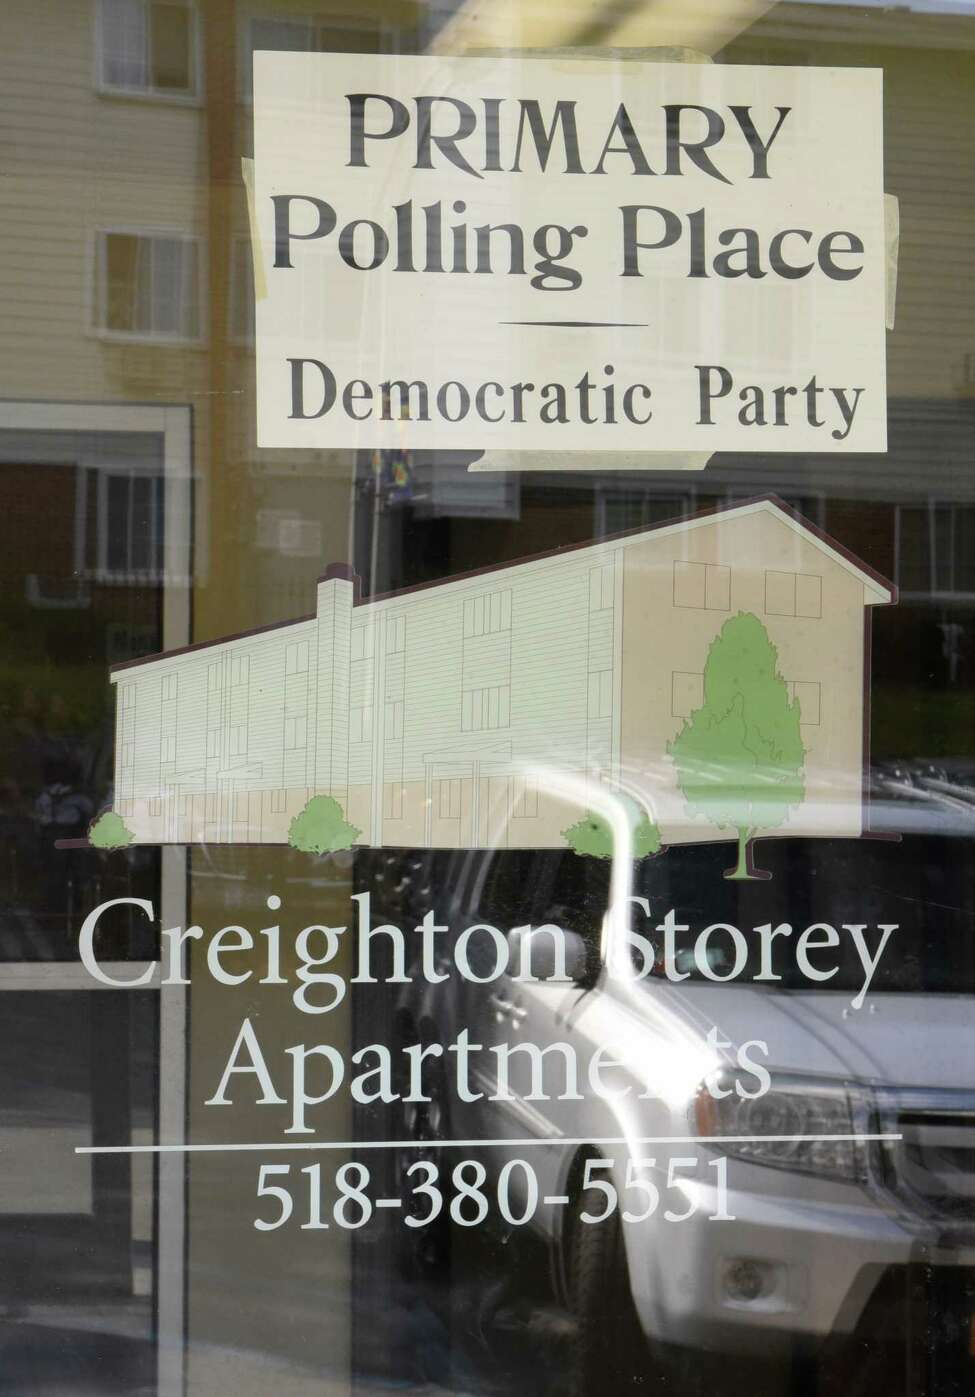 A sign for the primary polling place Democratic Party is seen in a window at the Creighton Storey Homes on Tuesday June 25, 2019 in Albany, N.Y. (Lori Van Buren/Times Union)